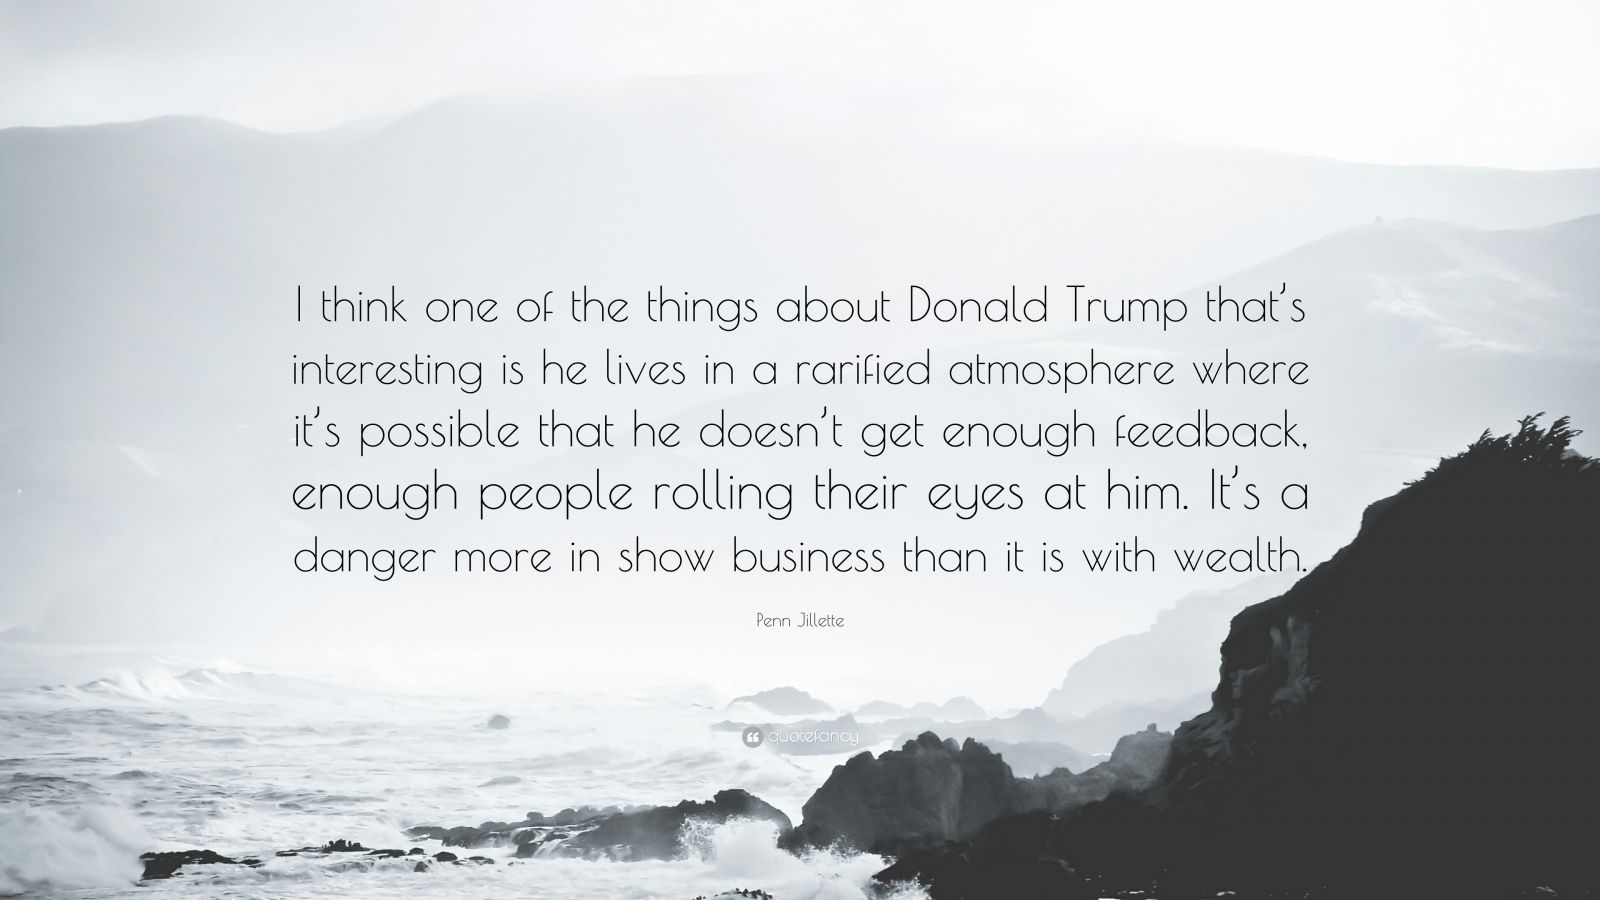 """Penn Jillette Quote: """"I think one of the things about Donald Trump that's interesting is he lives in a rarified atmosphere where it's possible that he doesn't get enough feedback, enough people rolling their eyes at him. It's a danger more in show business than it is with wealth."""""""